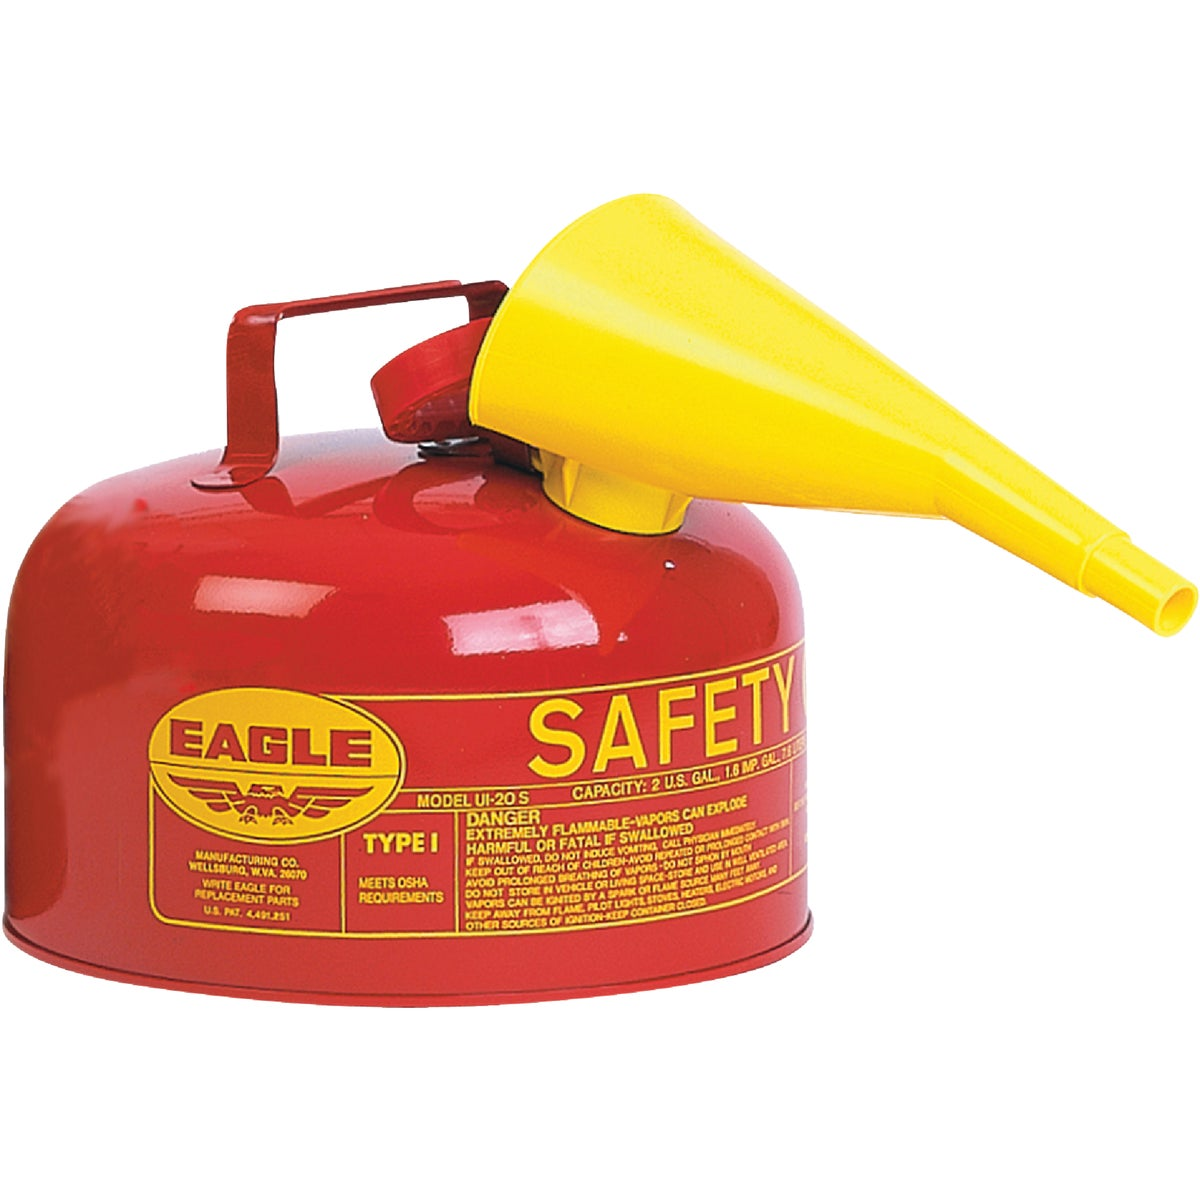 RED 2GAL GAS SAFETY CAN - UI-20-FS by Eagle Mfg Co